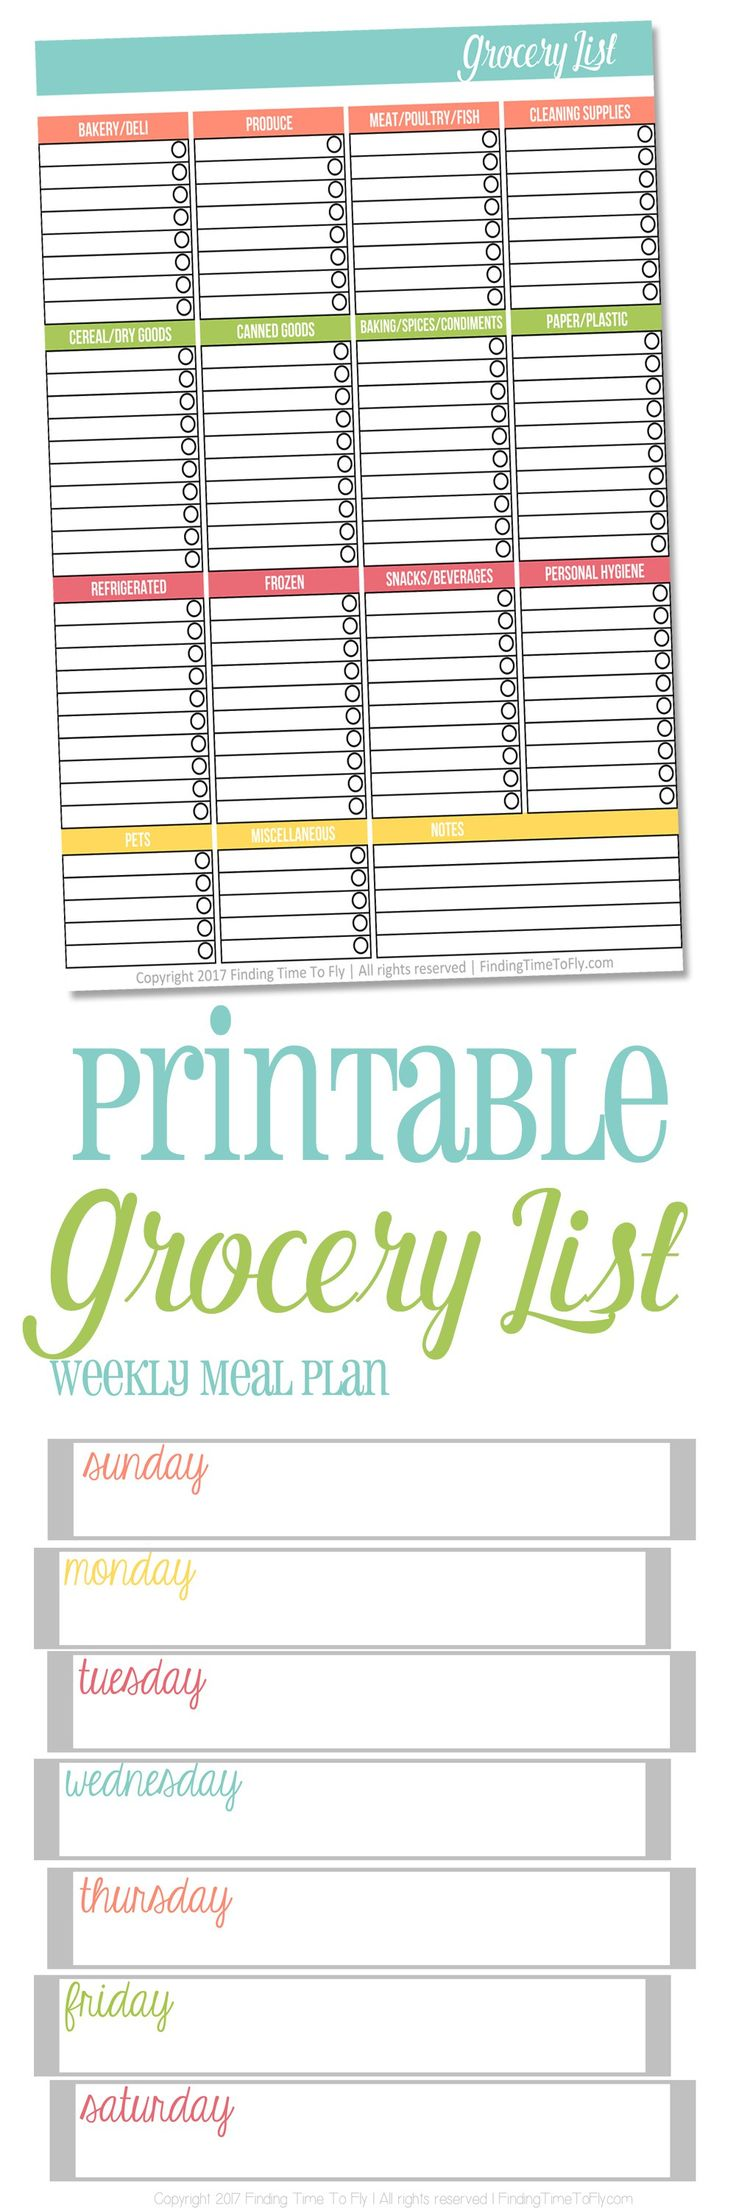 This free Printable Grocery List helps you stay organized and spend less time in the grocery store. There are also matching Meal Planning sheets! And they're available in half sizes for the mini binders!